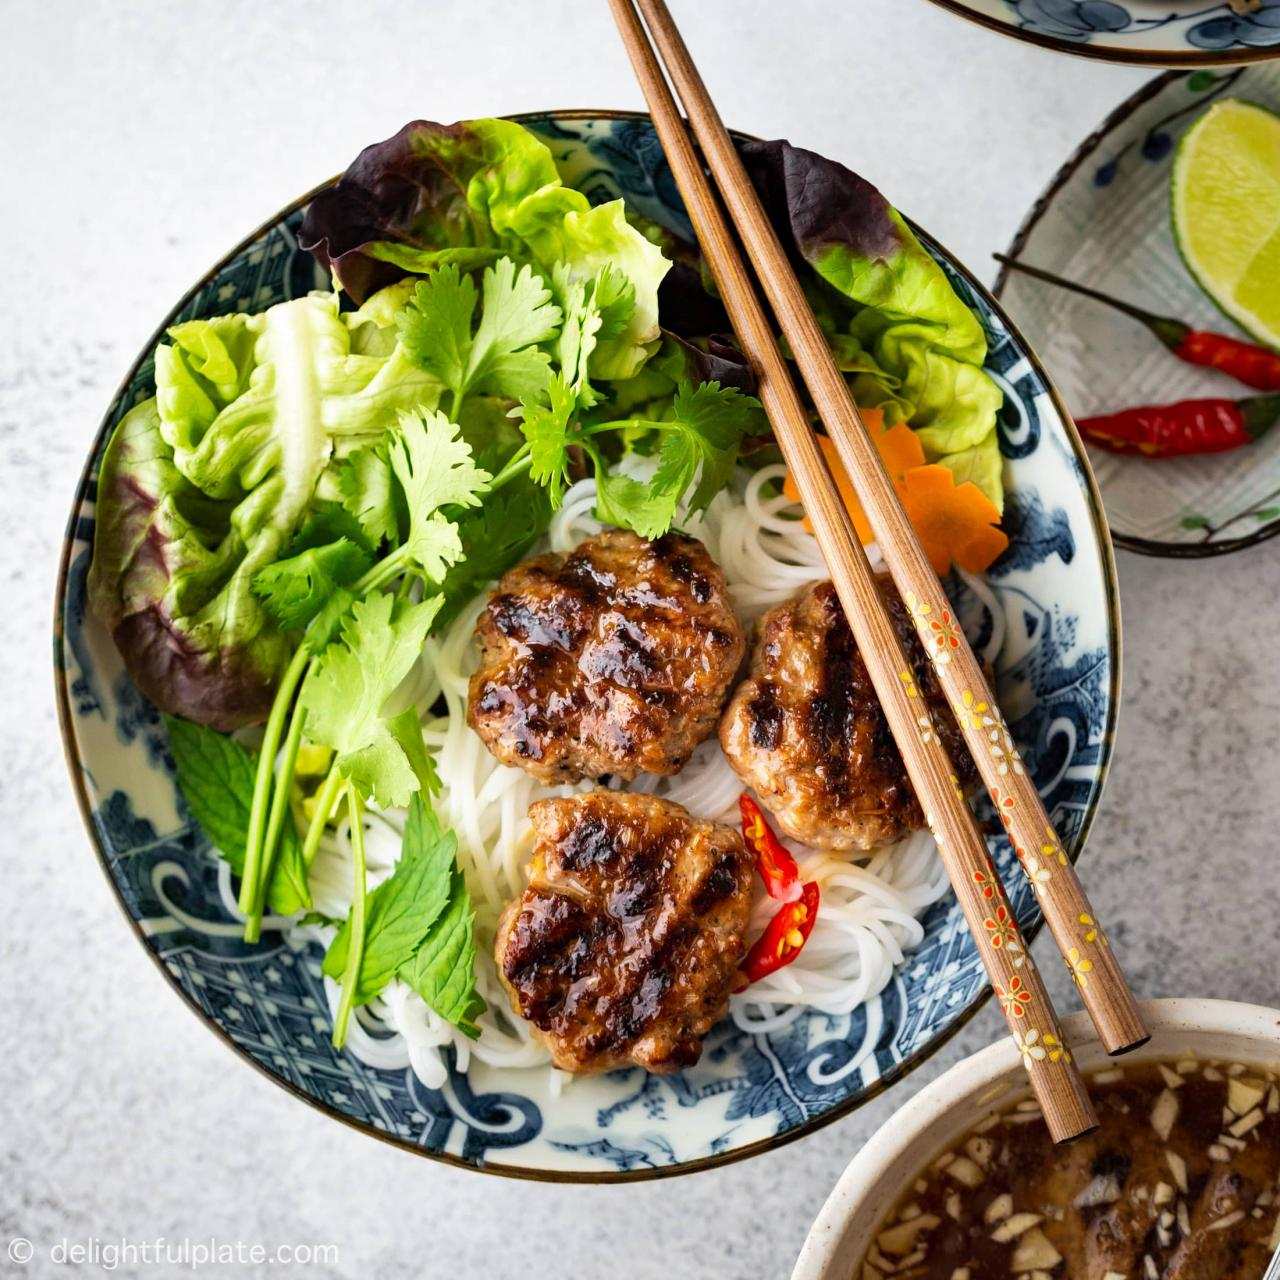 Authentic Bun Cha - Vietnamese Grilled Pork Meatballs with Noodles - Delightful Plate